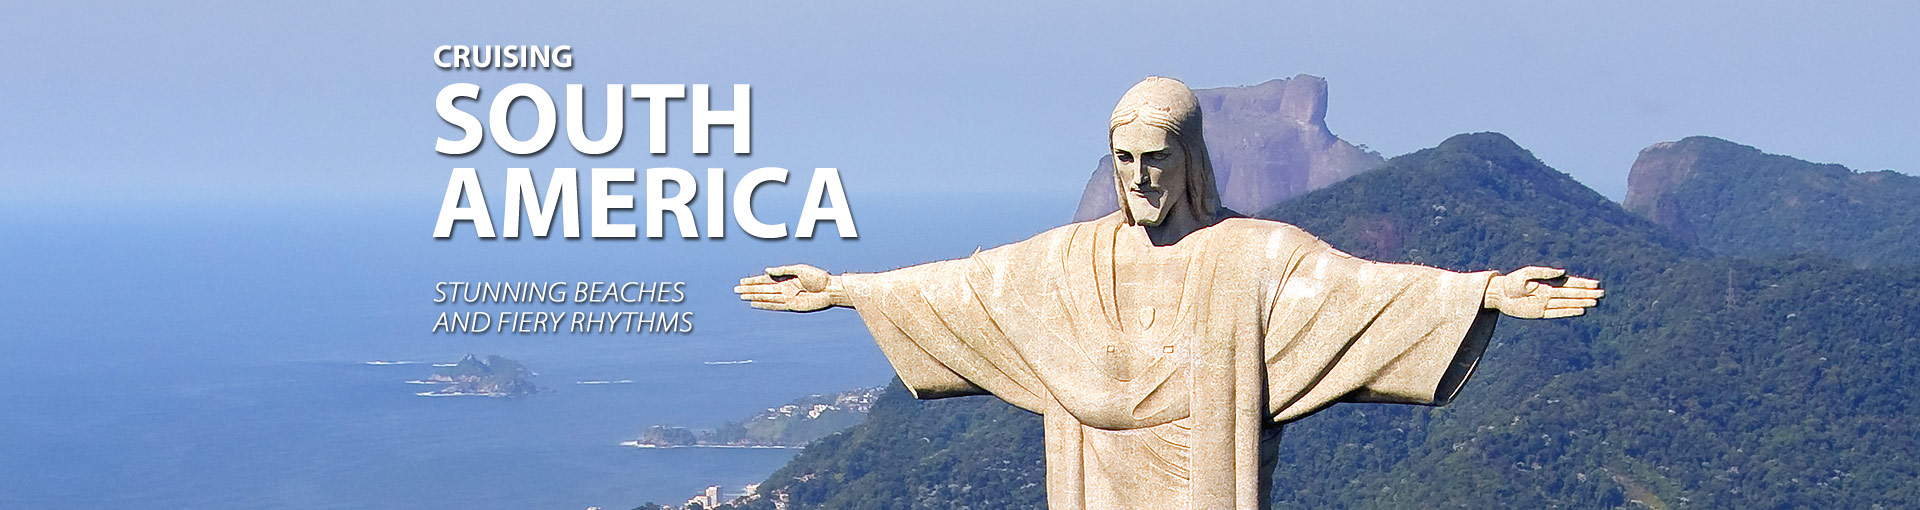 Cruises To South America And South American Cruises - Cruise to south america